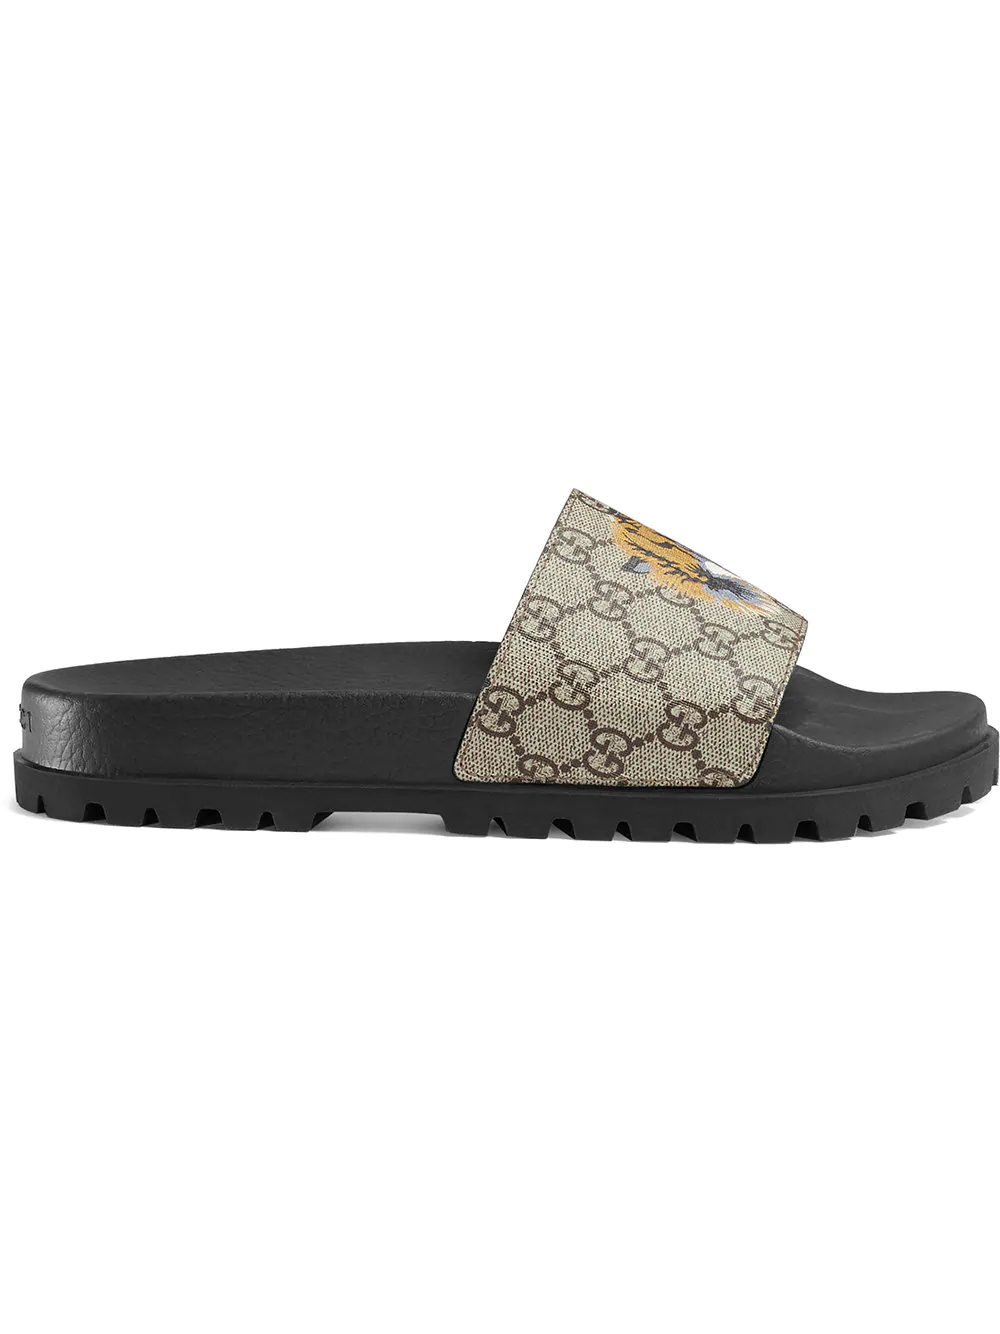 47321a465 Gucci Gg Supreme Tiger Slide Sandal - Farfetch In 8919 Beige | ModeSens